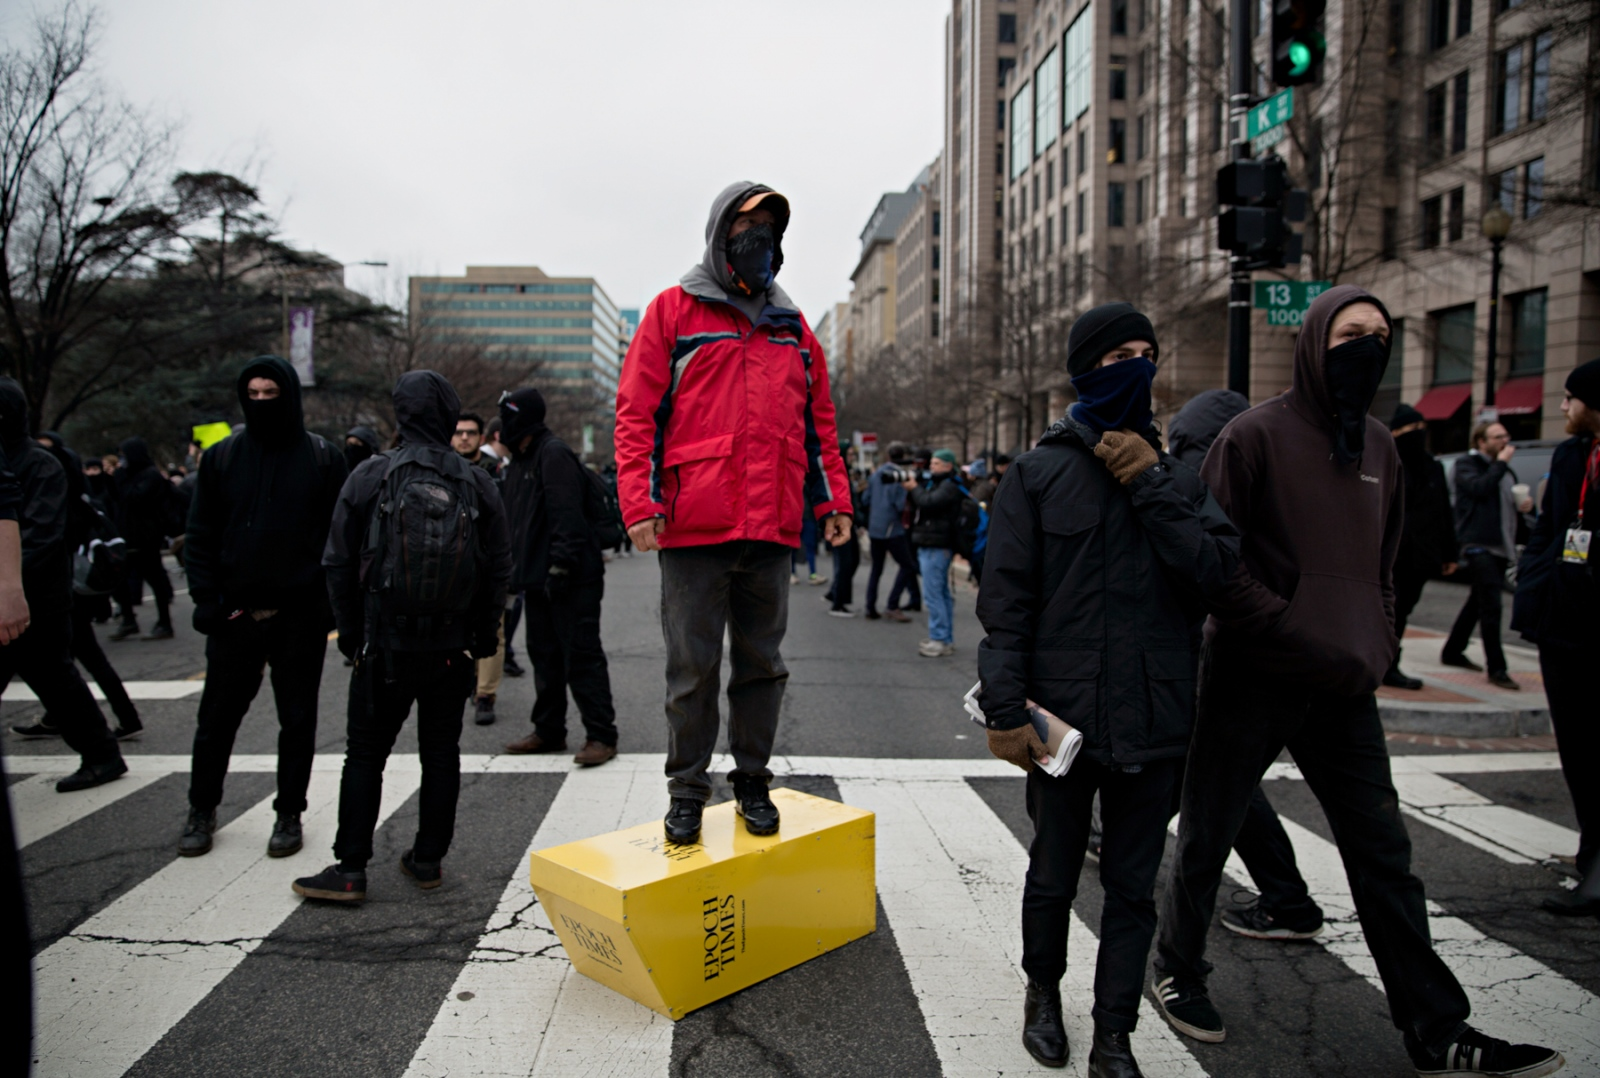 January 20, 2017 - Washington, DC, United States: An anti-trump protestor steps on a broken newspaper dispenser and cheers the crowd on. Various groups descended upon the DC area to voice their protest against Donald Trump's presidency they believed to have been stolen. The member of the Black Bloc broke windows of specific businesses such as the Bank of America, Chase Bank, some hotels and several bus station and ended with the destruction of a limousine.